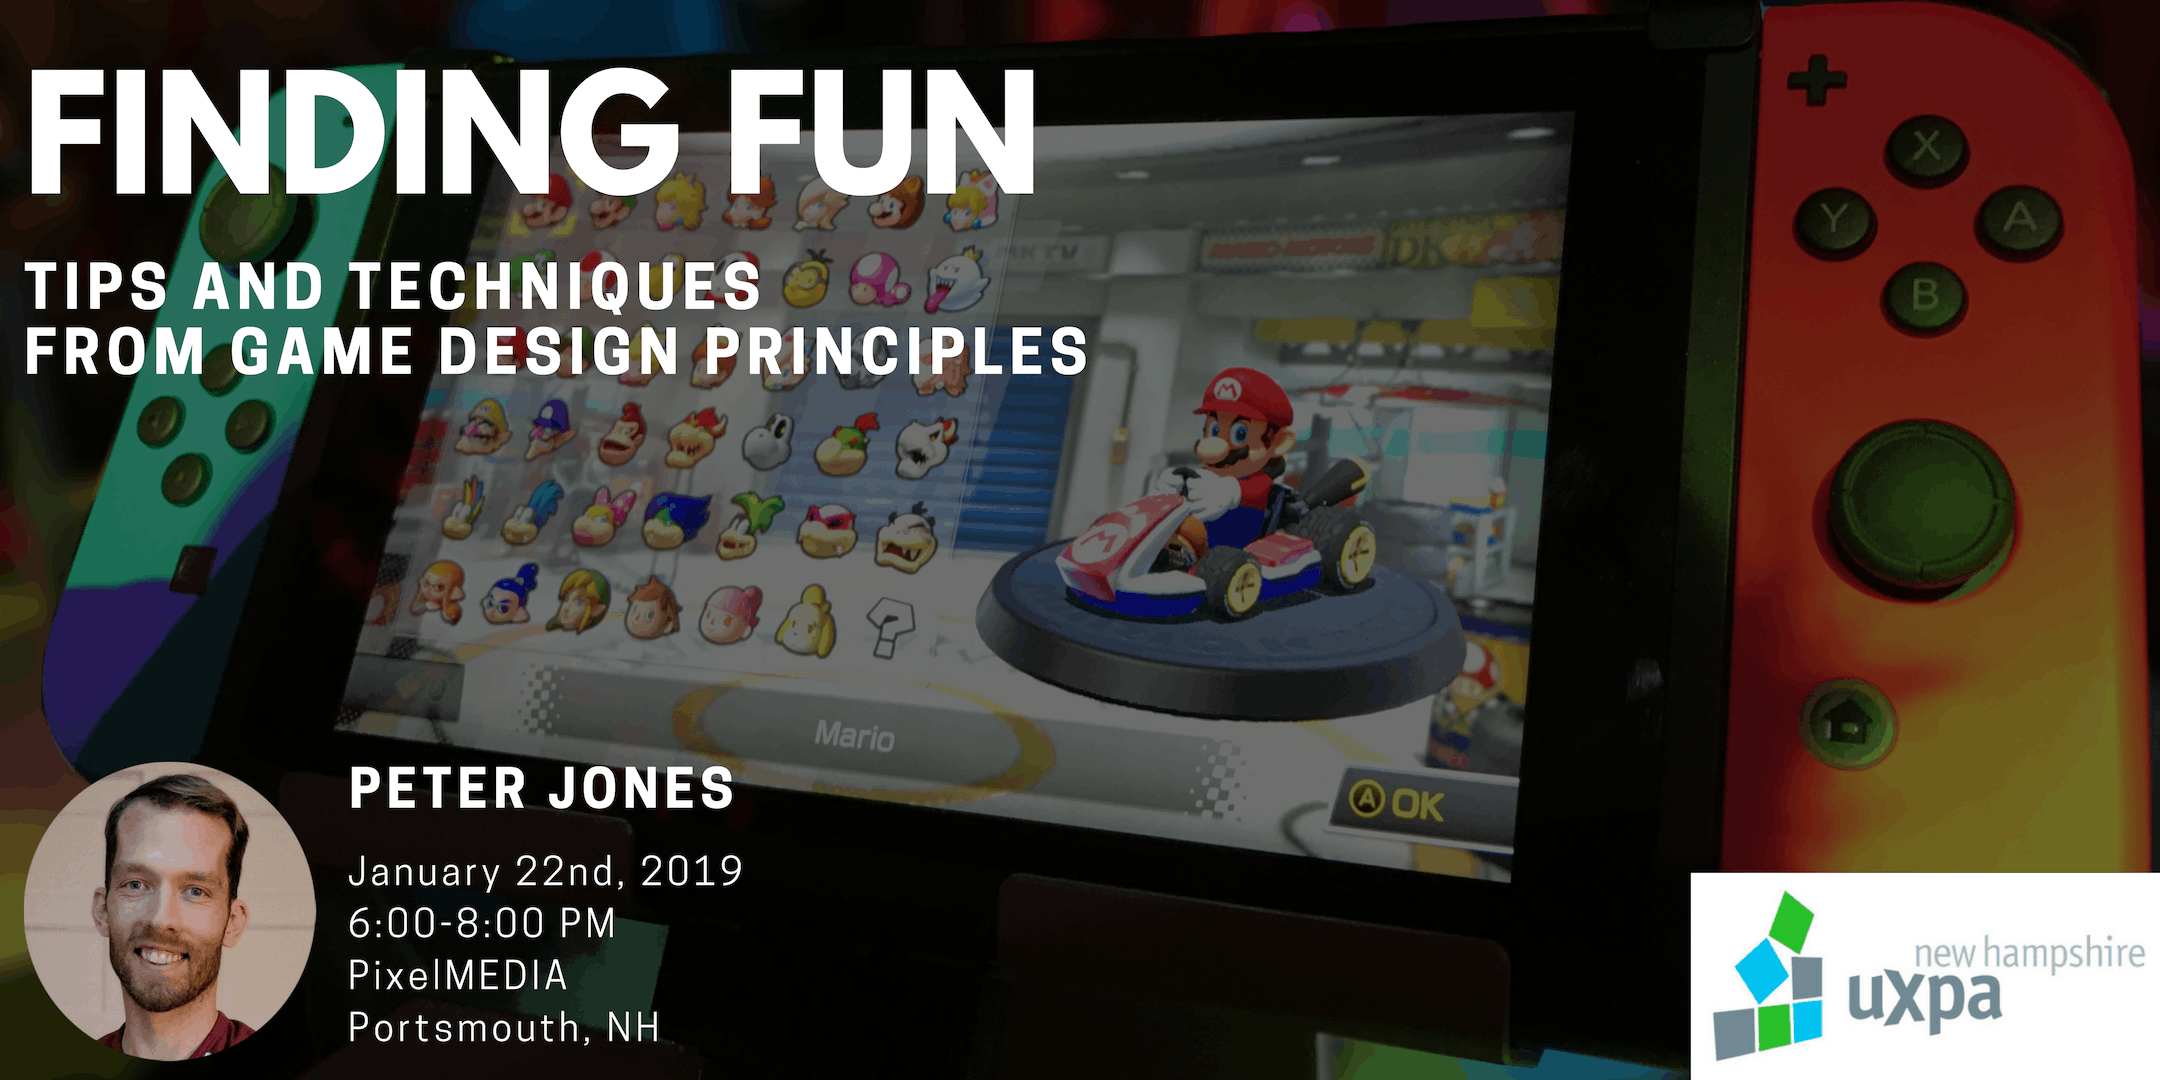 Finding Fun: Tips and Techniques from Game Design Principles